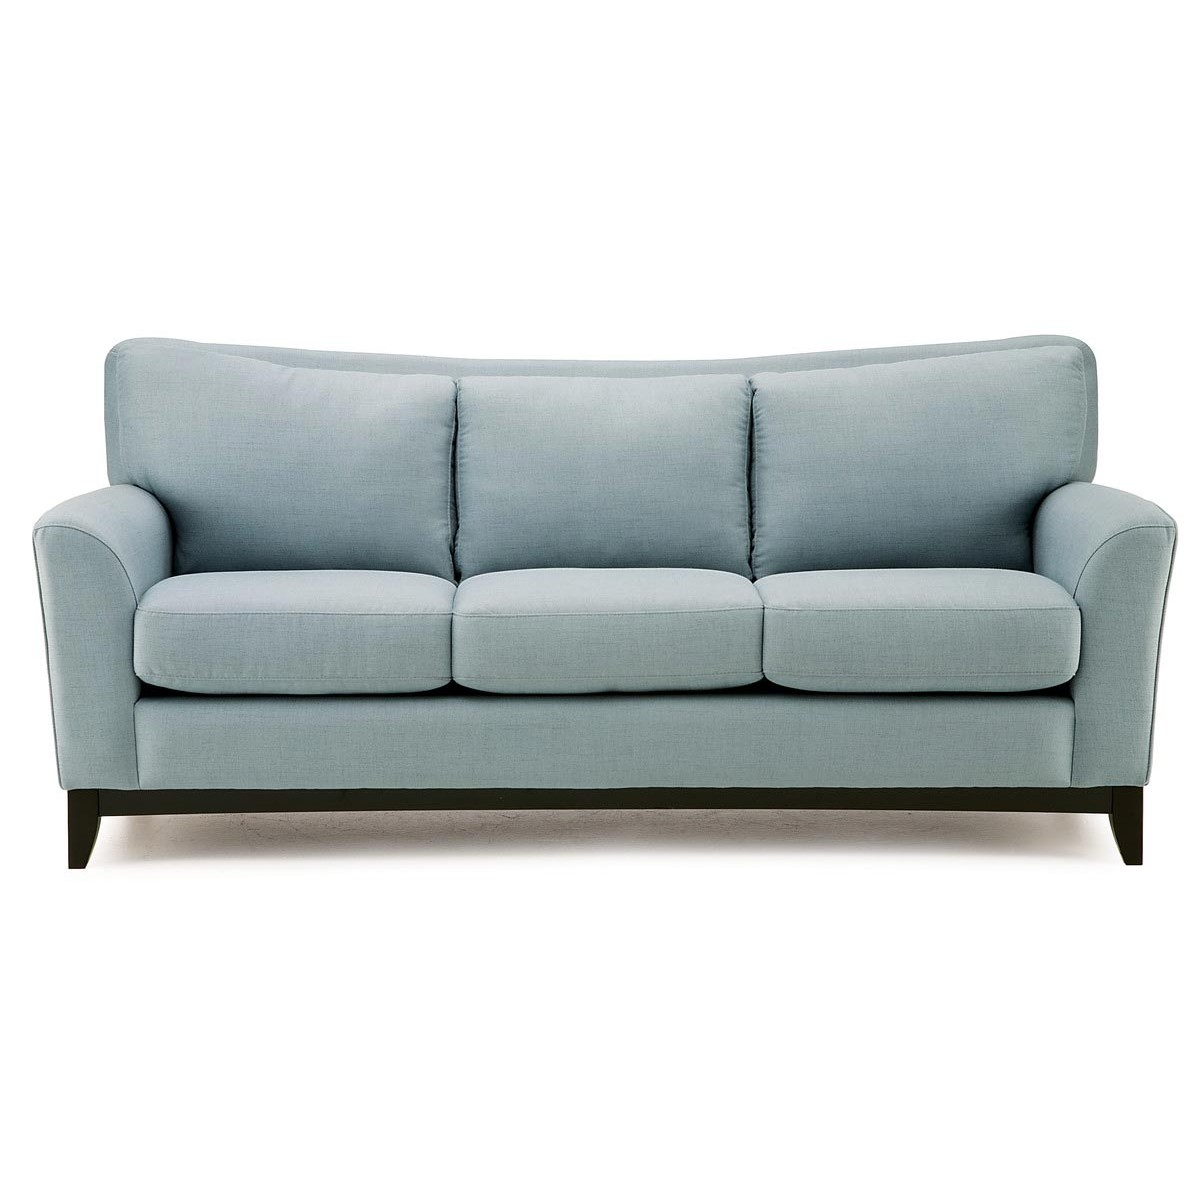 Palliser india from 115900 by palliser danco modern for Sectional sofa bed india